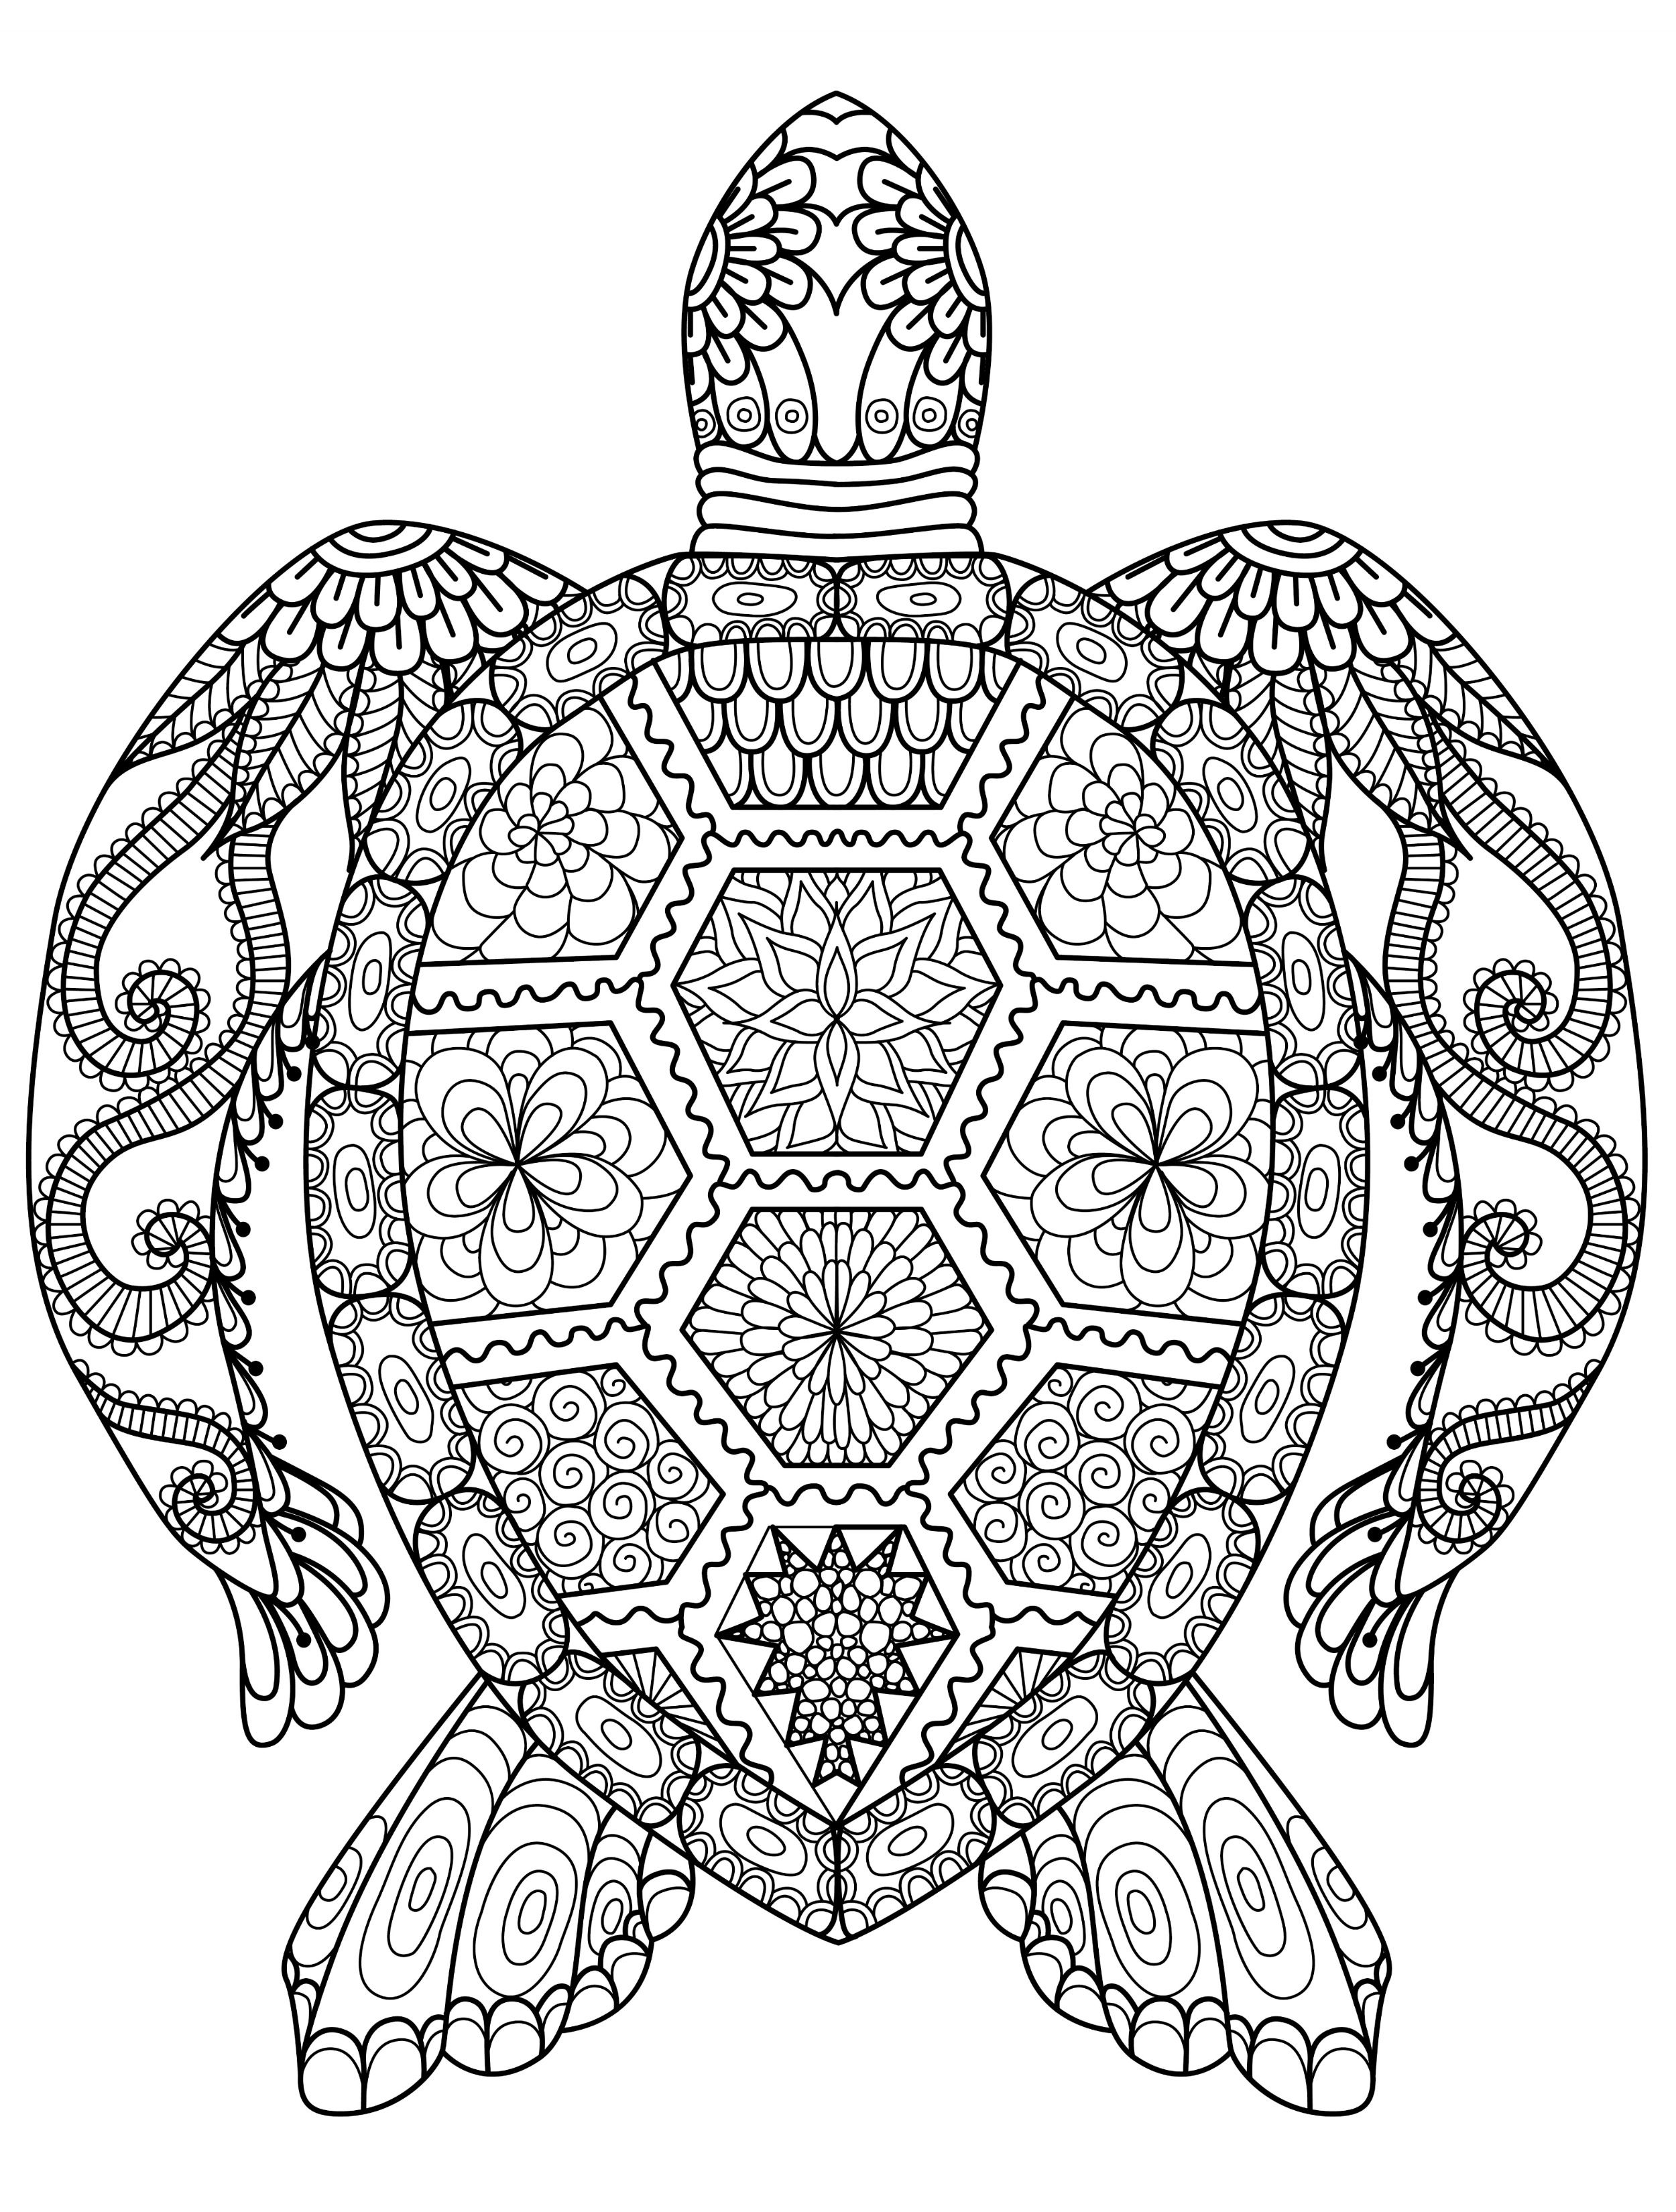 animal coloring pages for adults.html